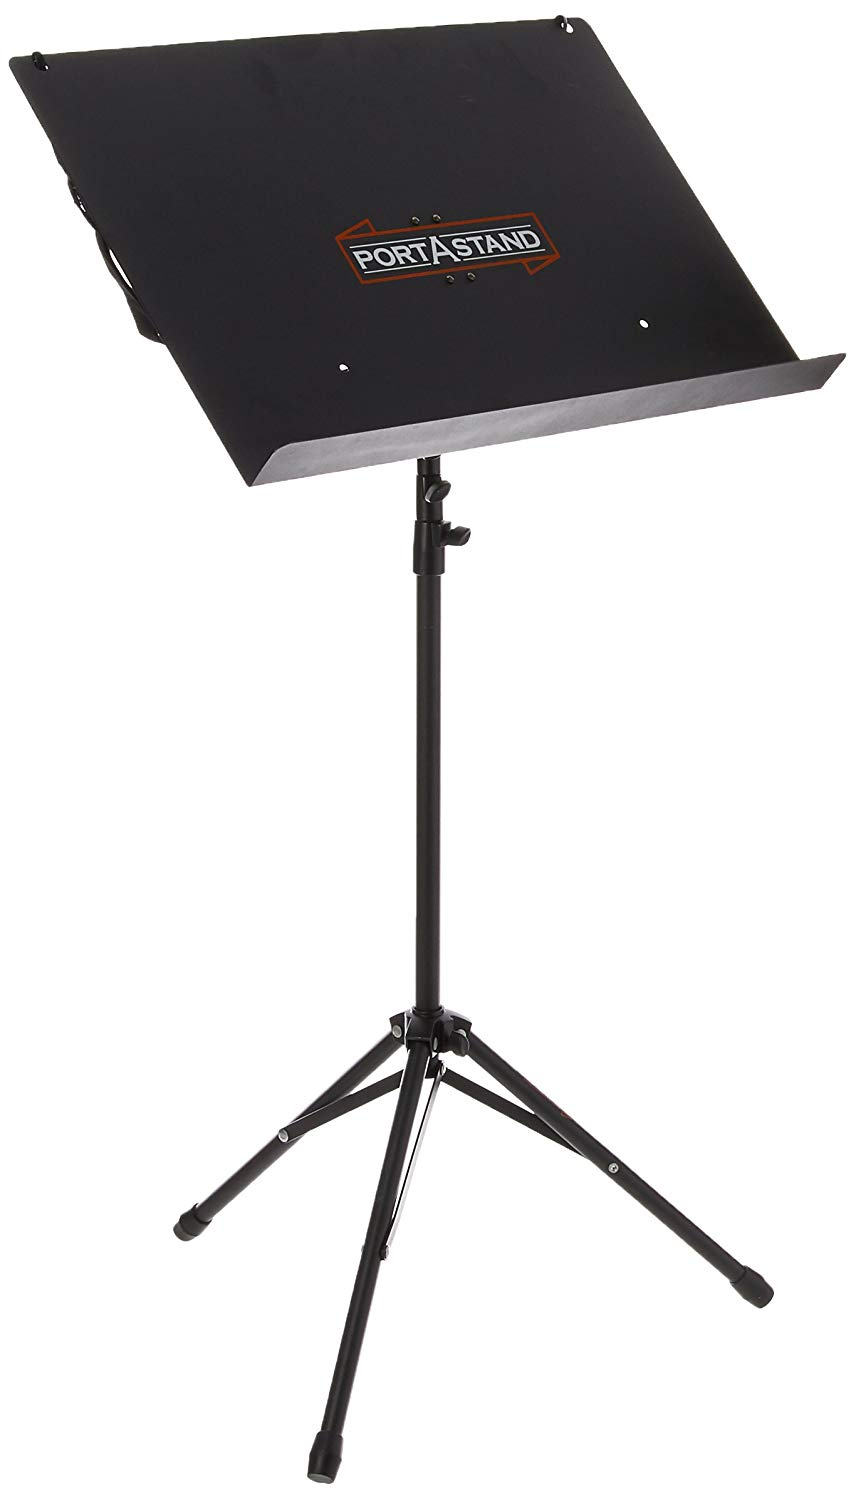 Portastand PASCOM Commoner Music Stand, Black-Steel